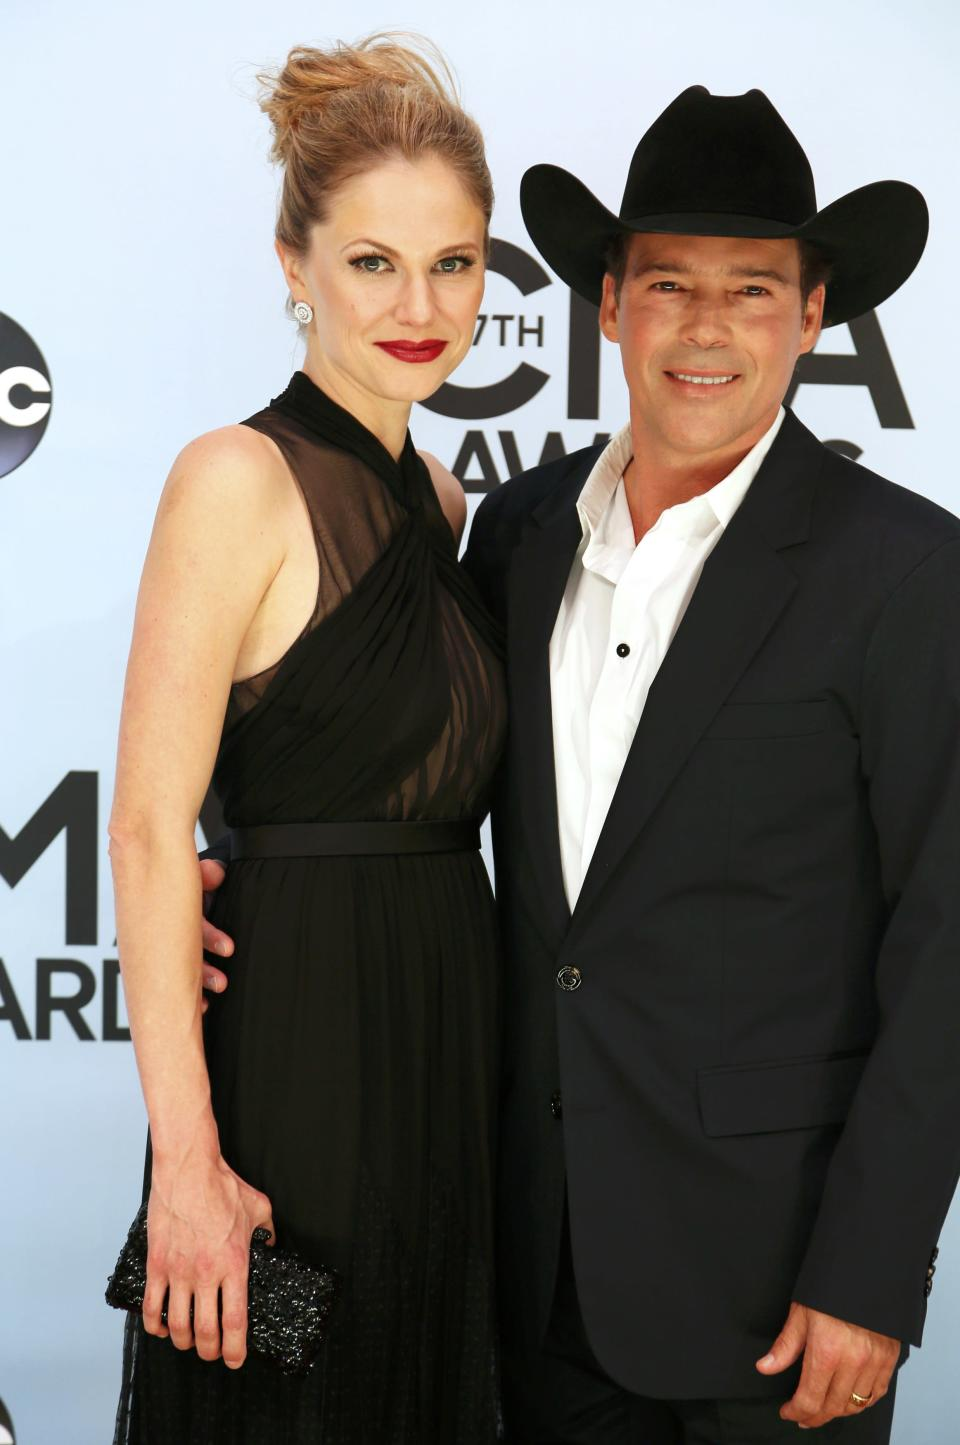 Clay Walker and wife Jessica Craig pose on arrival at the 47th Country Music Association Awards in Nashville, Tennessee November 6, 2013. REUTERS/Eric Henderson (UNITED STATES - Tags: ENTERTAINMENT)